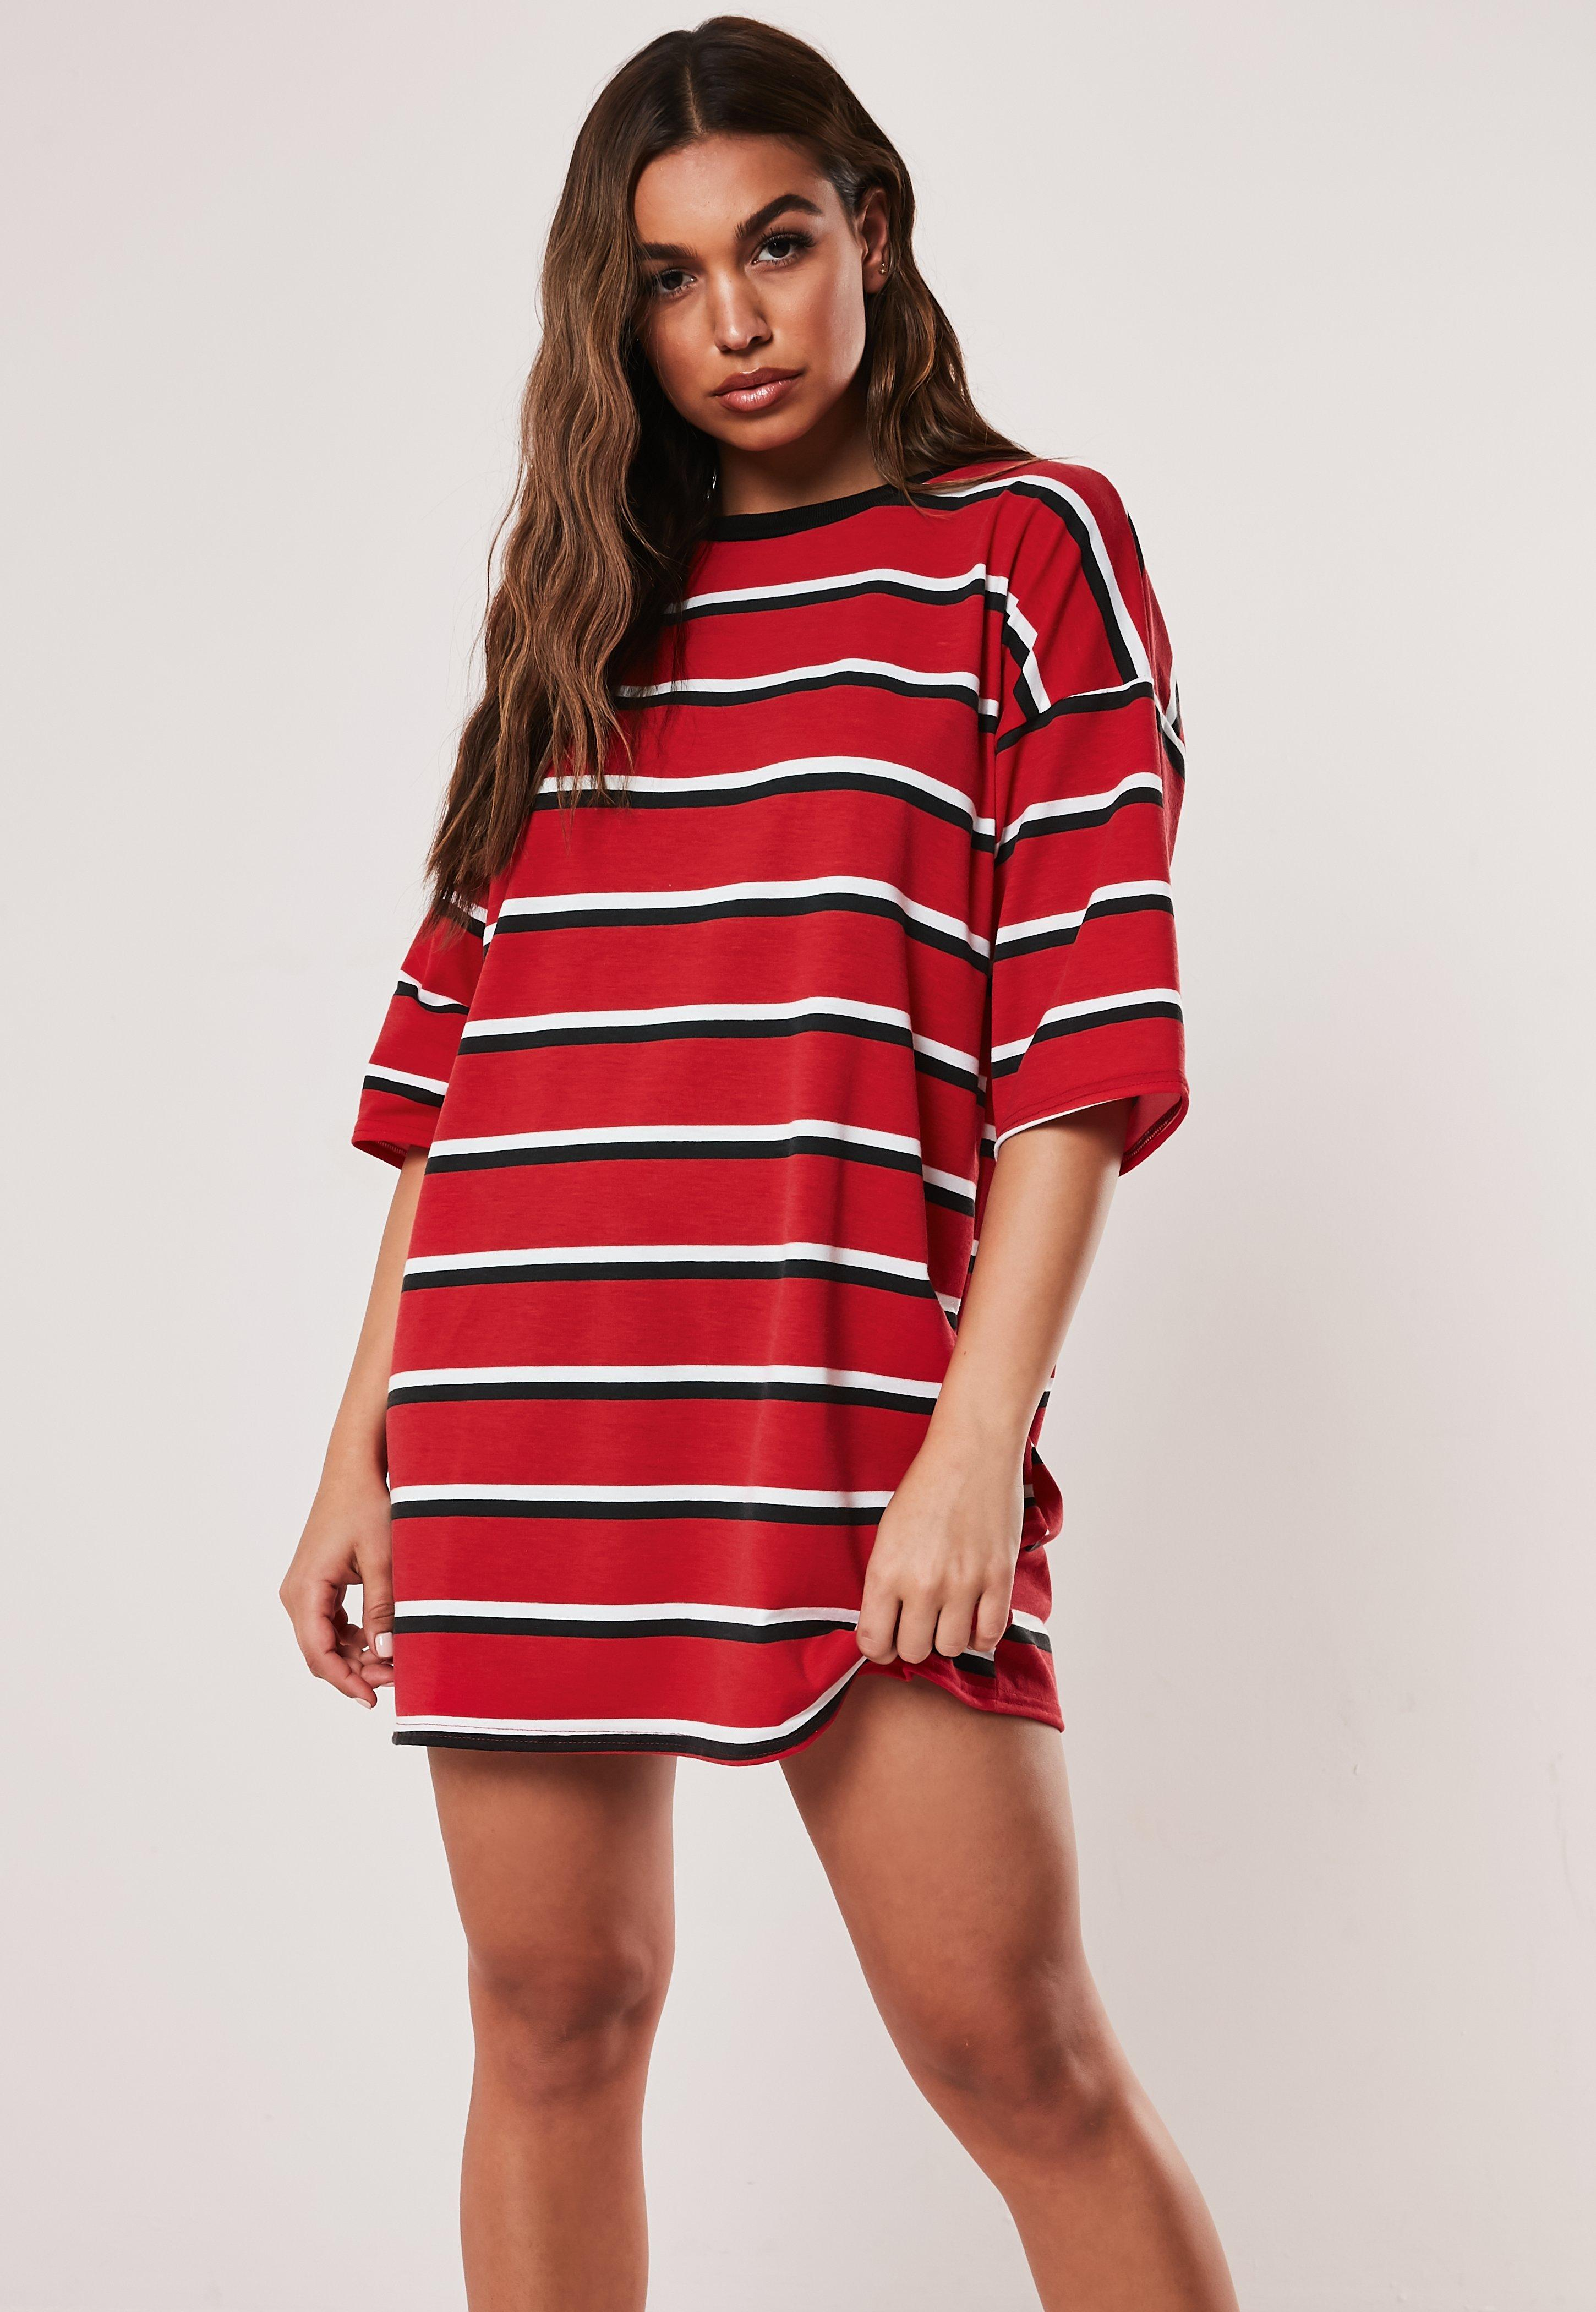 ad2ab43bb9 Dresses UK | Women's Dresses Online | Missguided